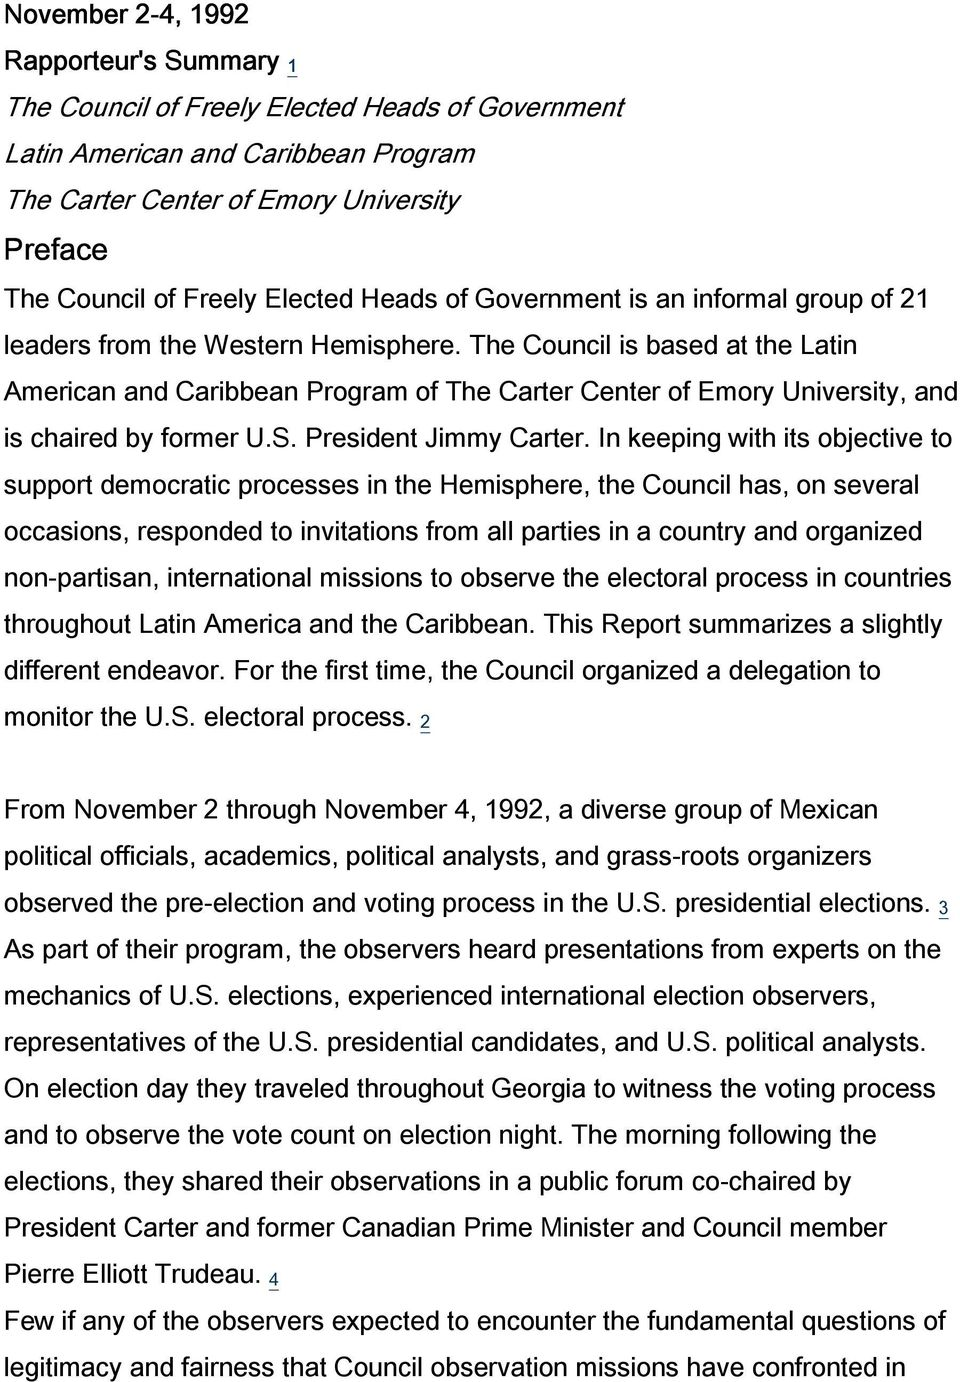 The Council is based at the Latin American and Caribbean Program of The Carter Center of Emory University, and is chaired by former U.S. President Jimmy Carter.